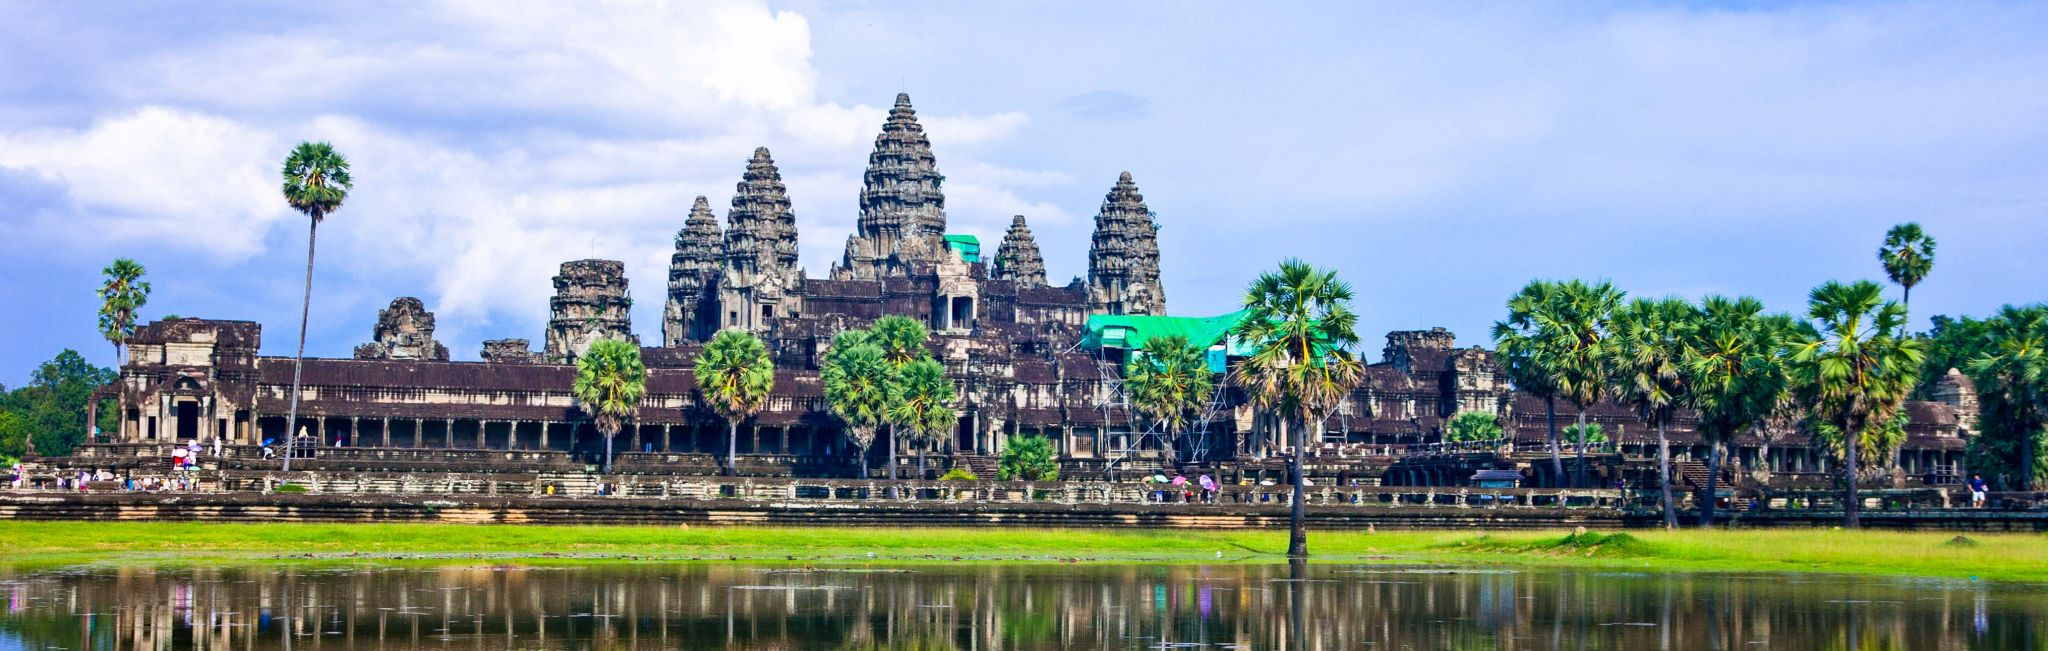 The temple complex of Angkor Wat in Siem Reap, Cambodia.